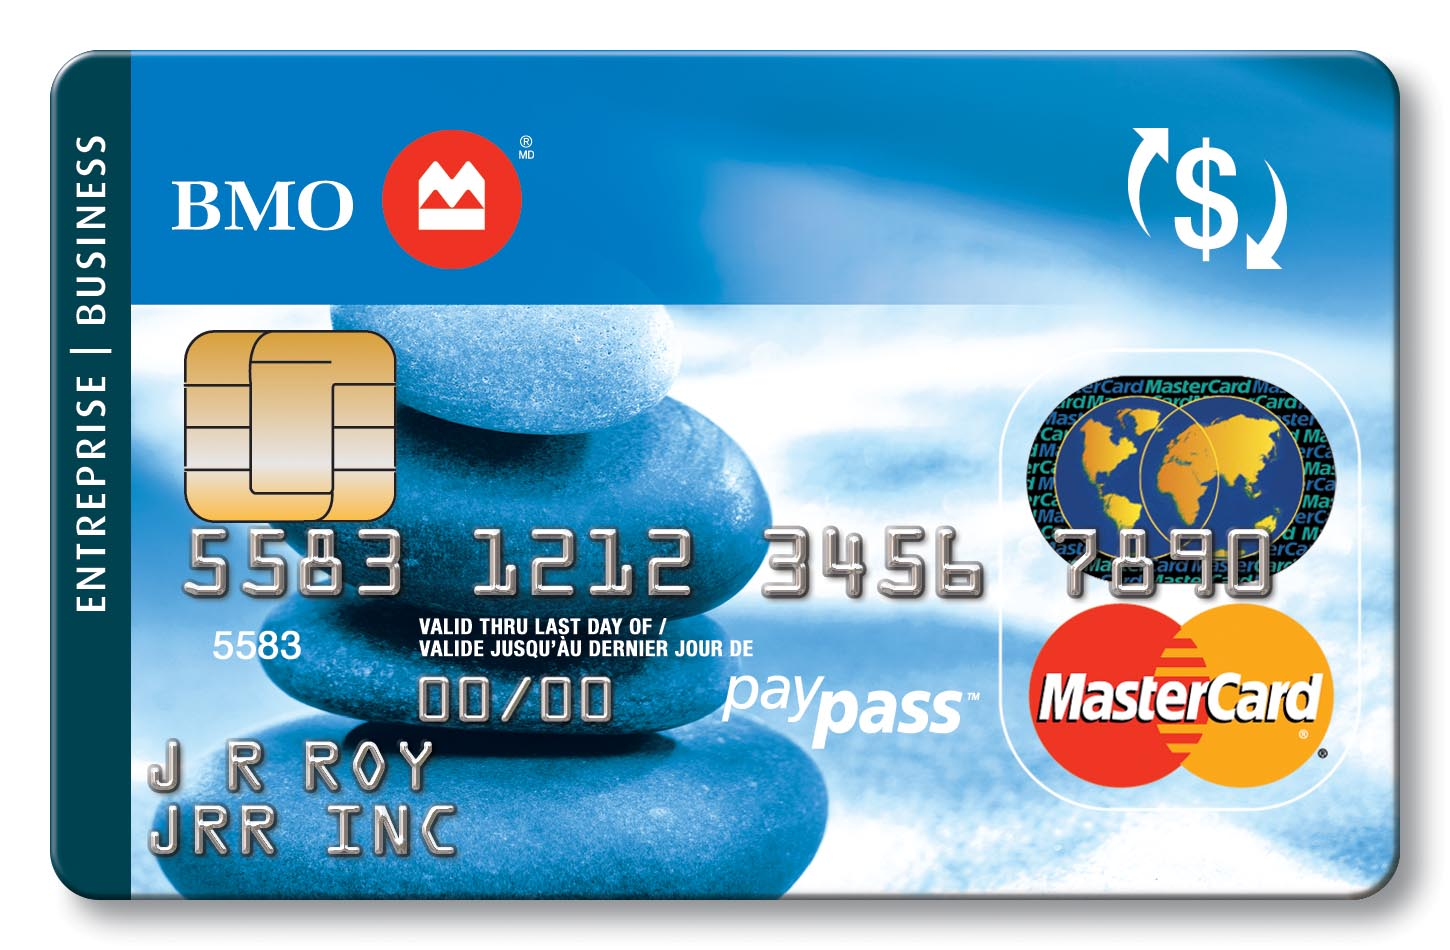 Mastercard Business Card | Unlimitedgamers.co